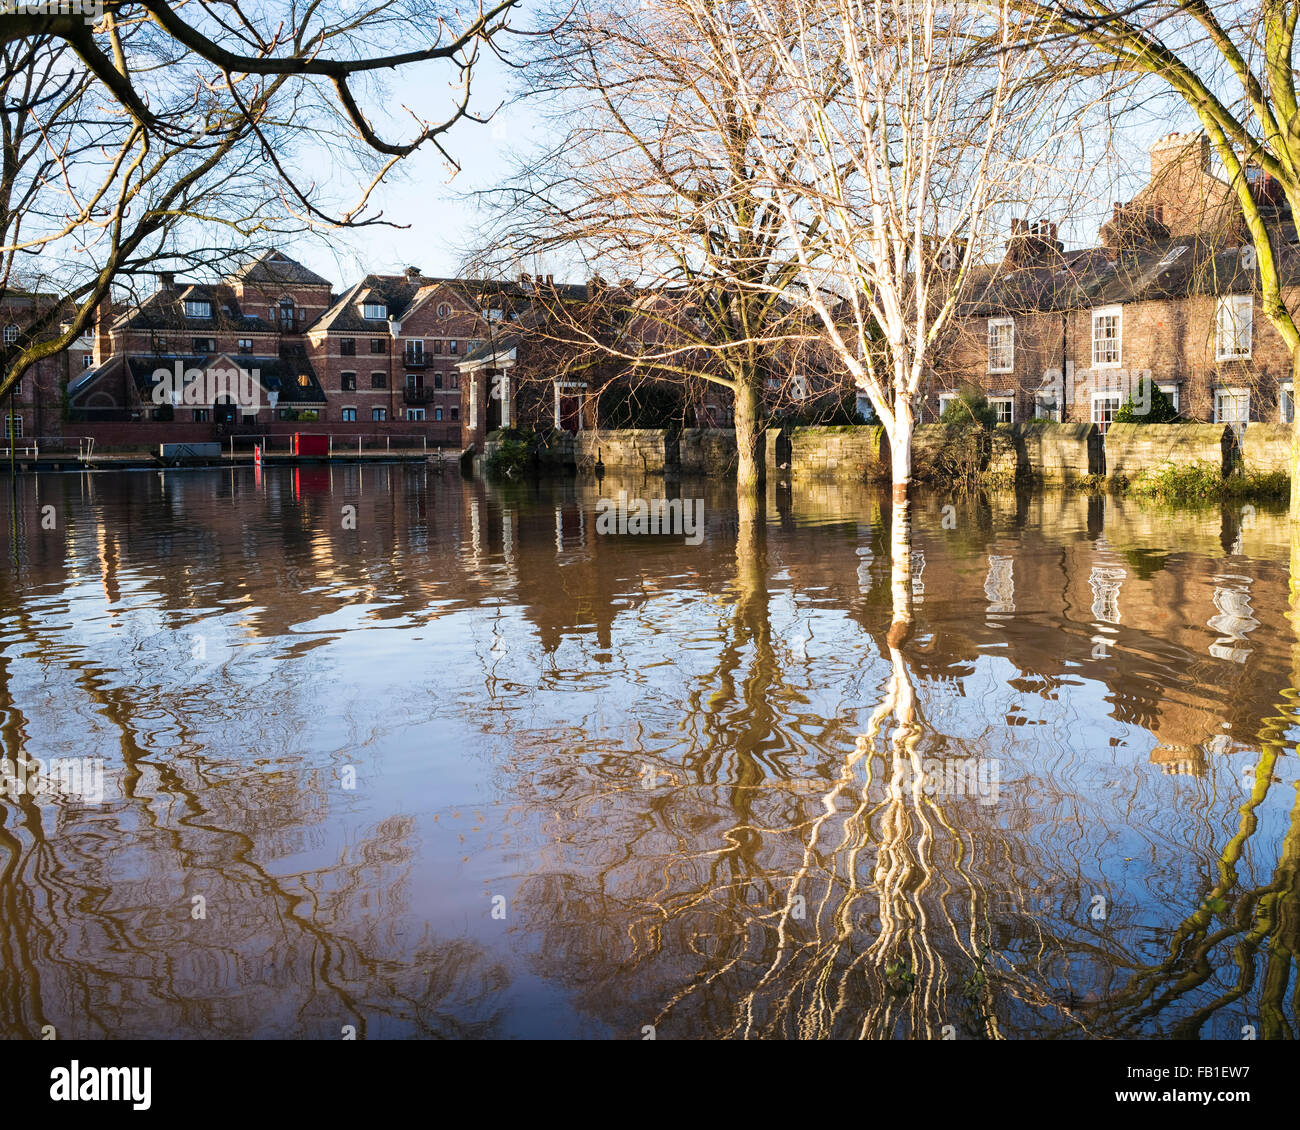 Modern Skeldergate apartments and a medieval wall reflected in floodwater in St. George's Field Park, York, Yorkshire, Stock Photo